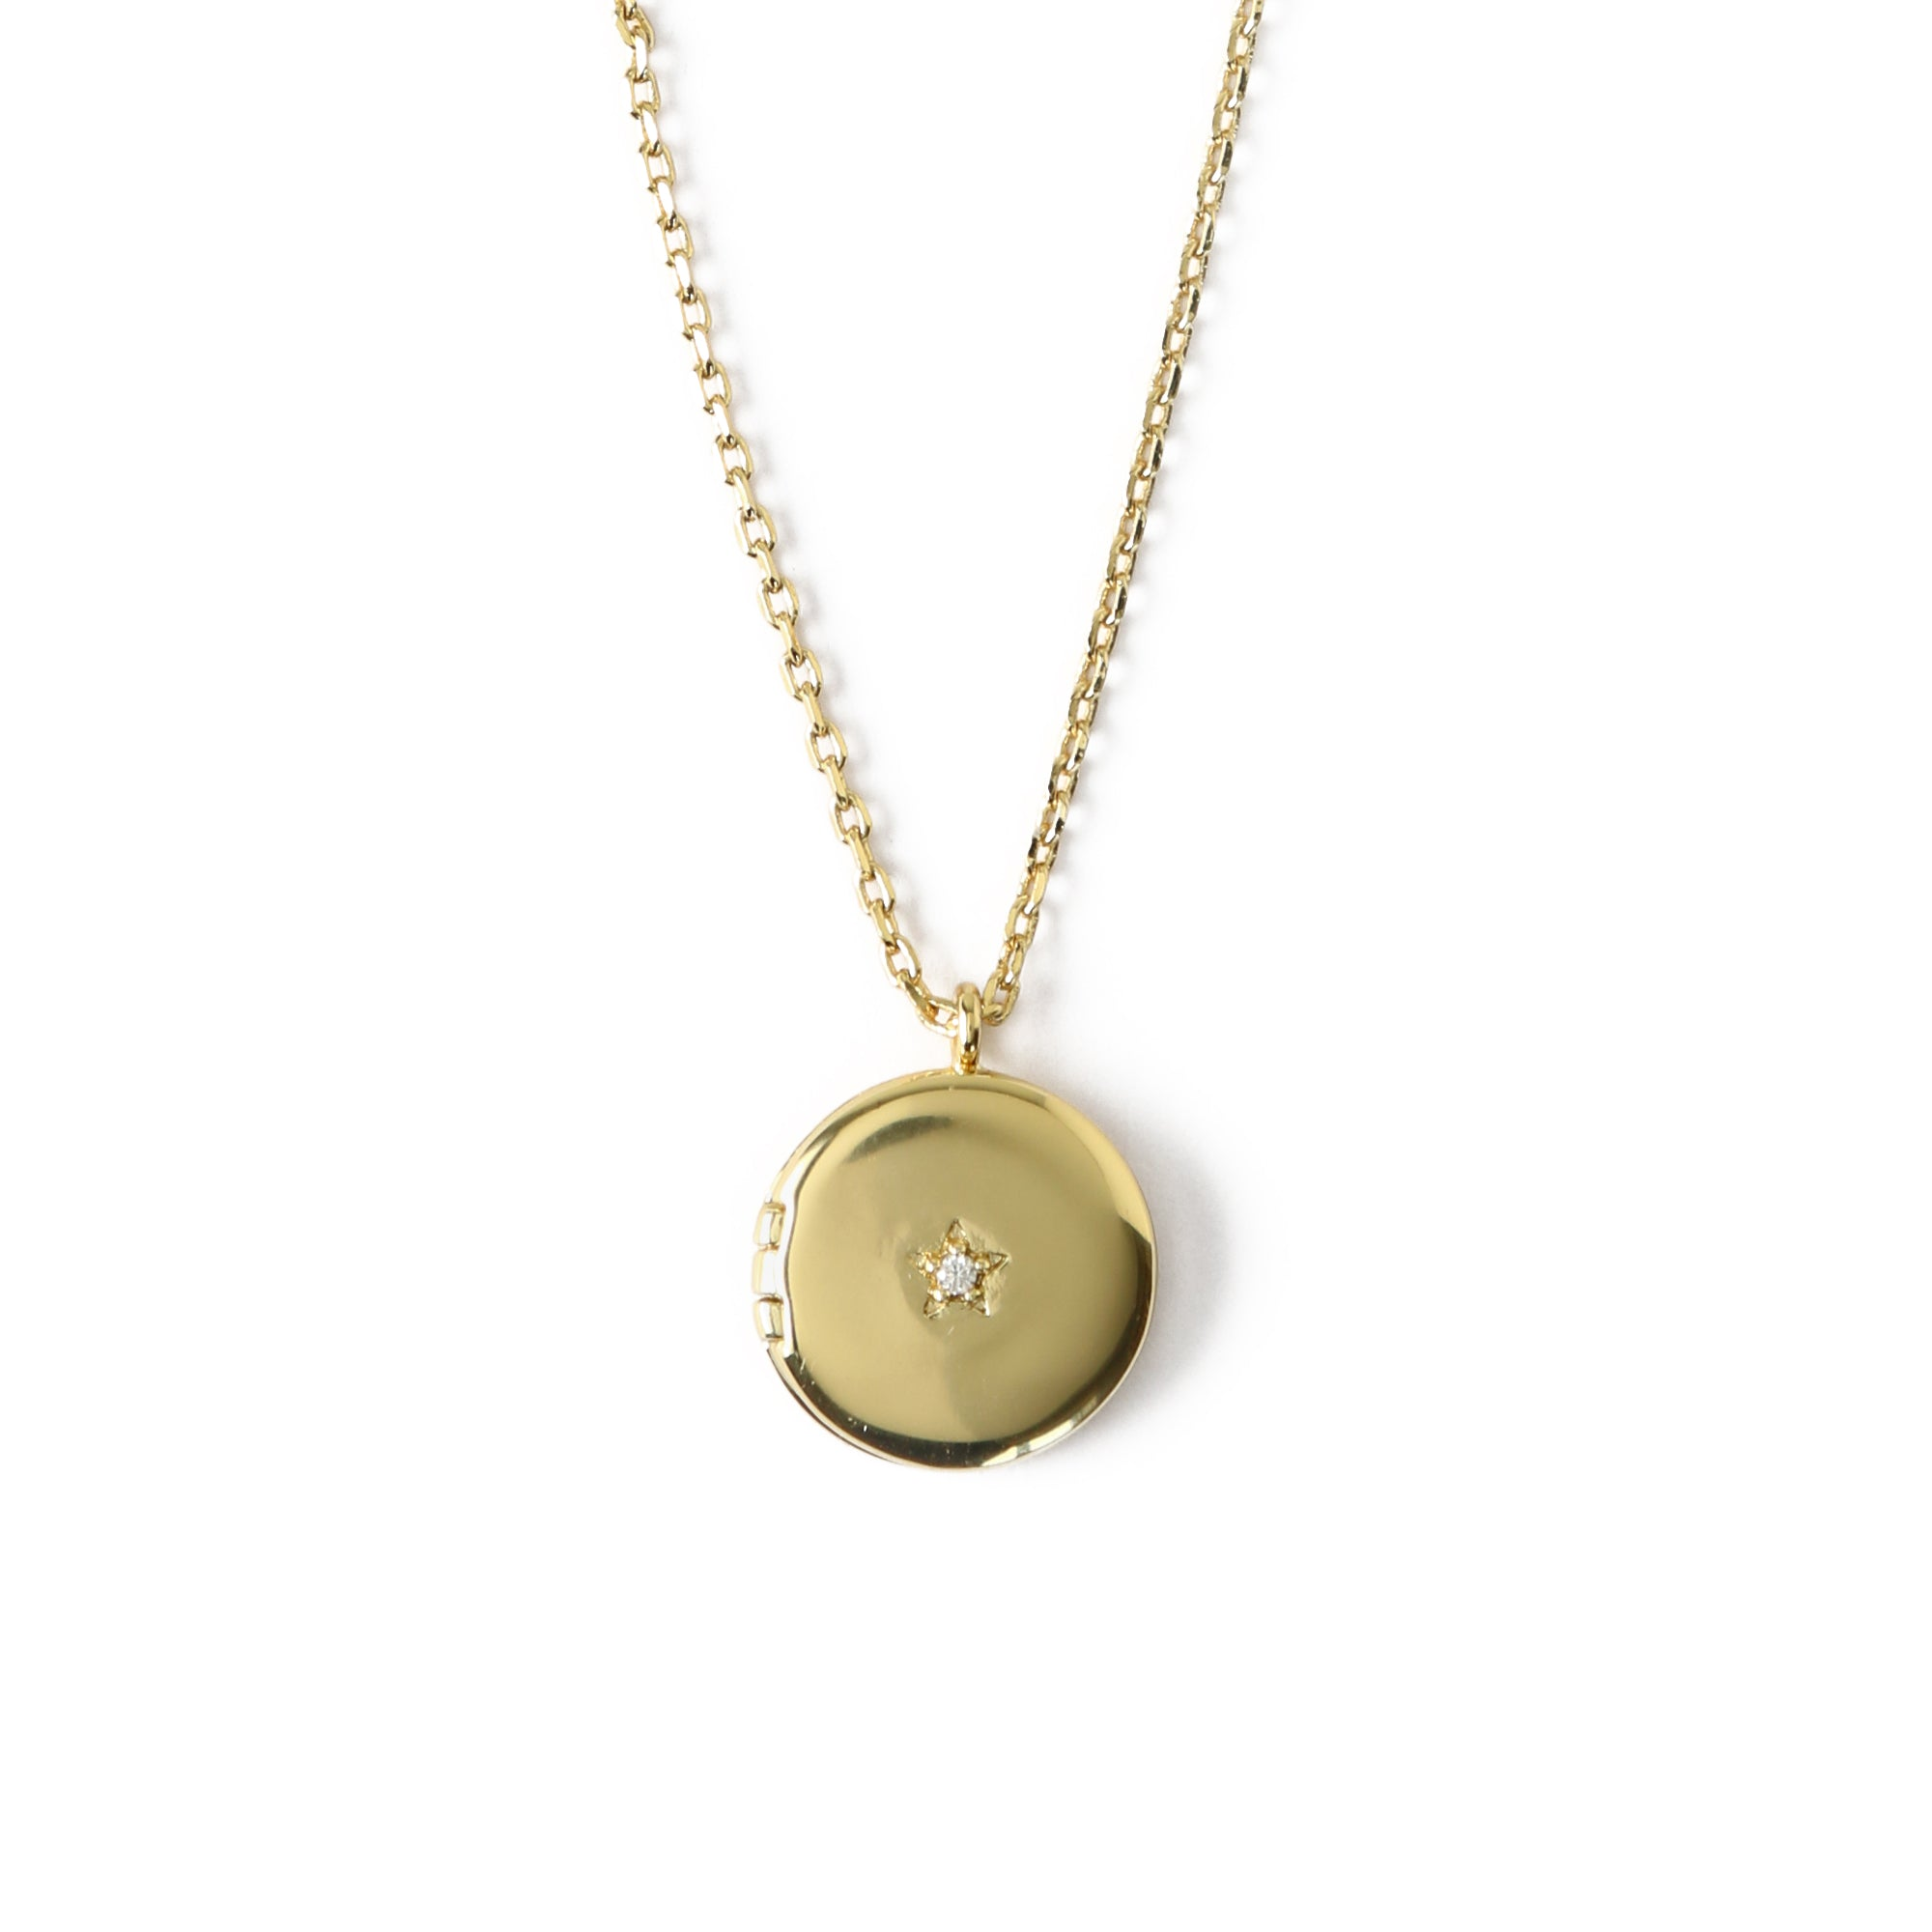 LUXE Mini Round Locket Necklace